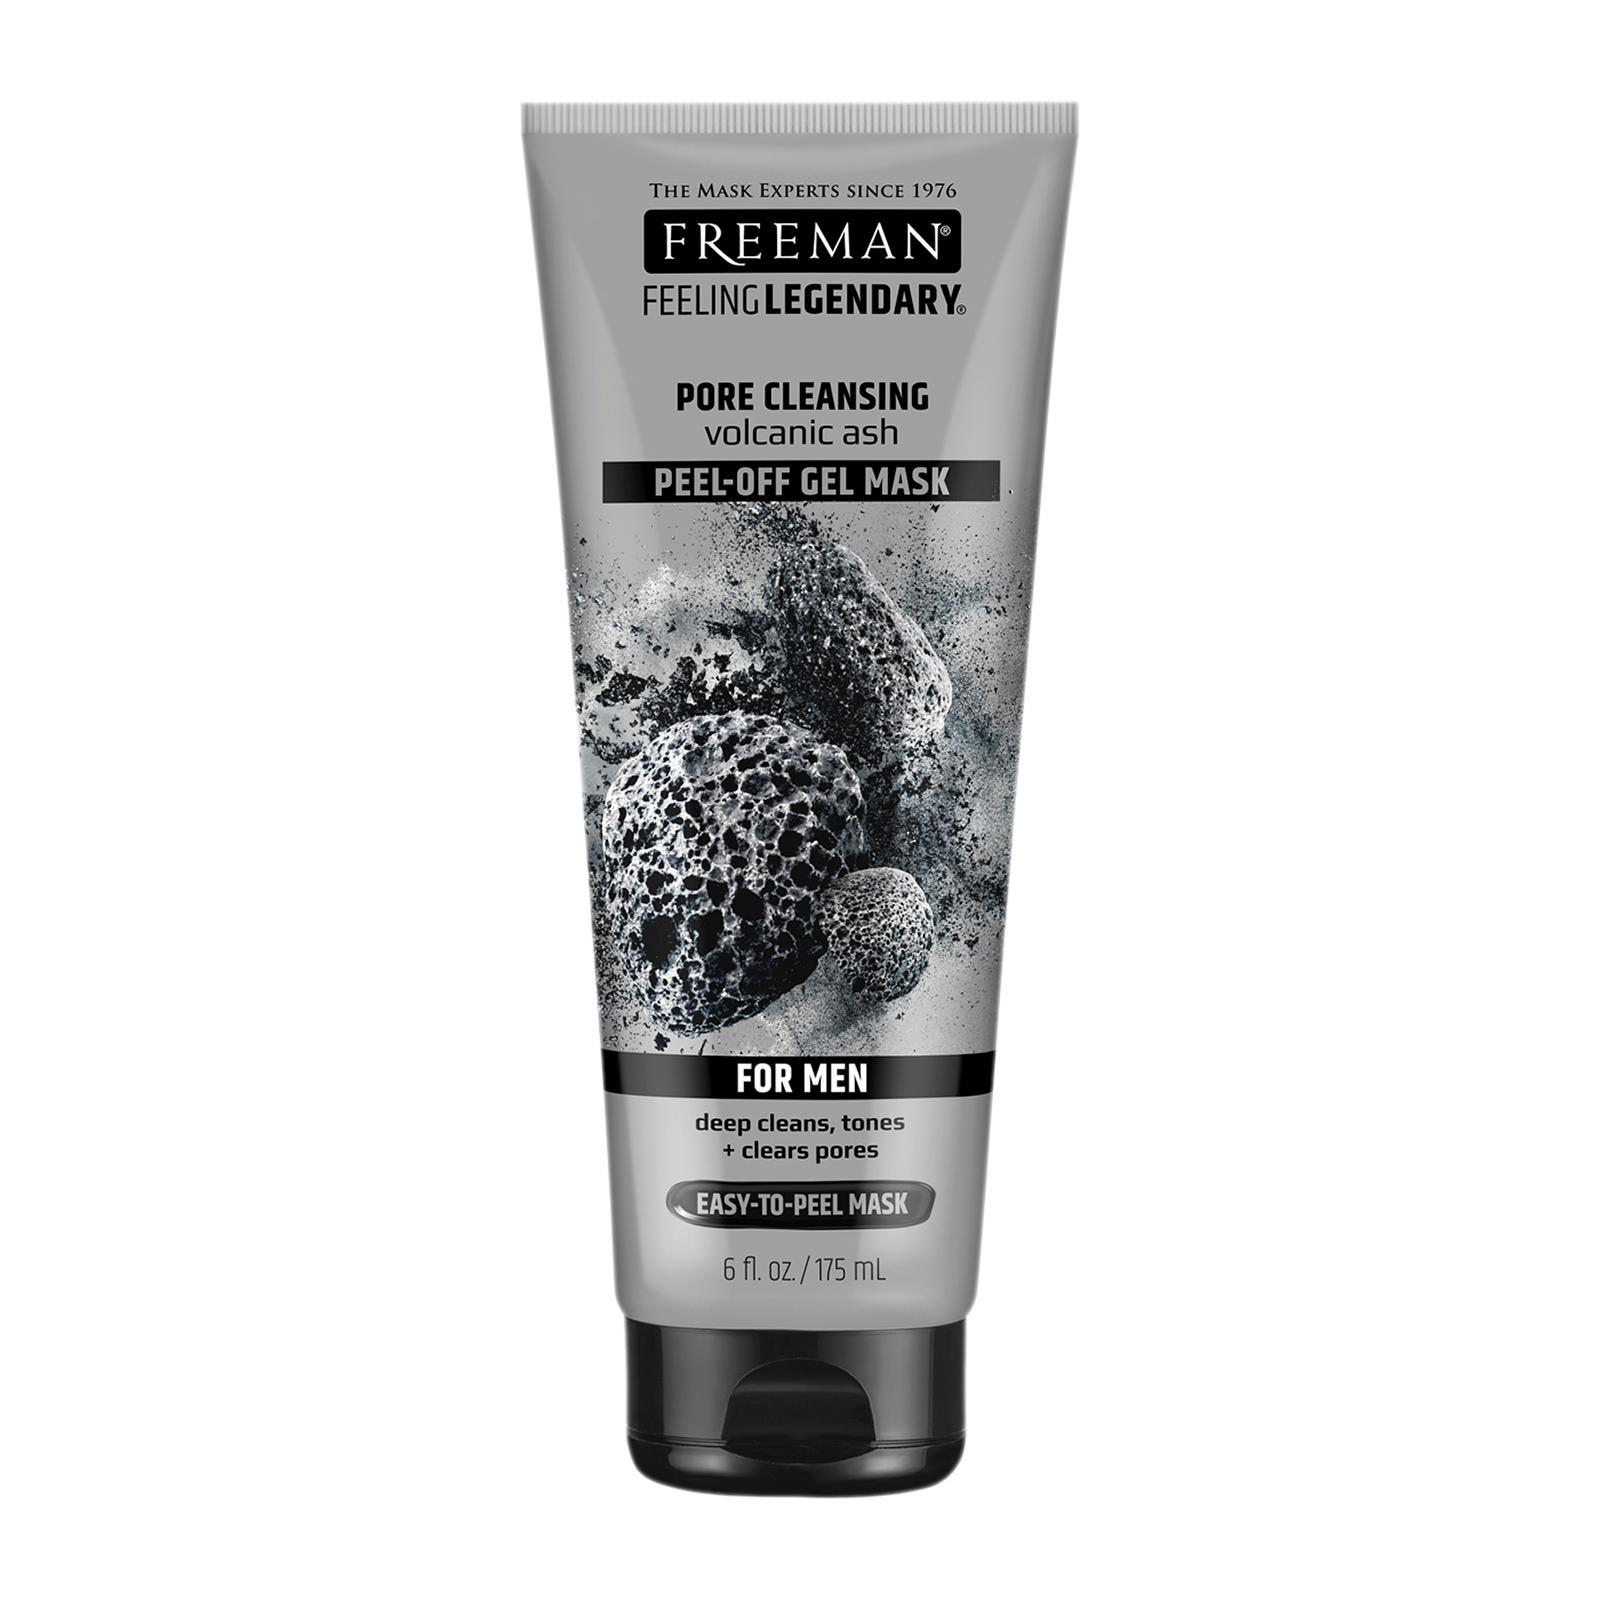 Freeman Pore Clearing Peel-Off Mask with Volcanic Ash